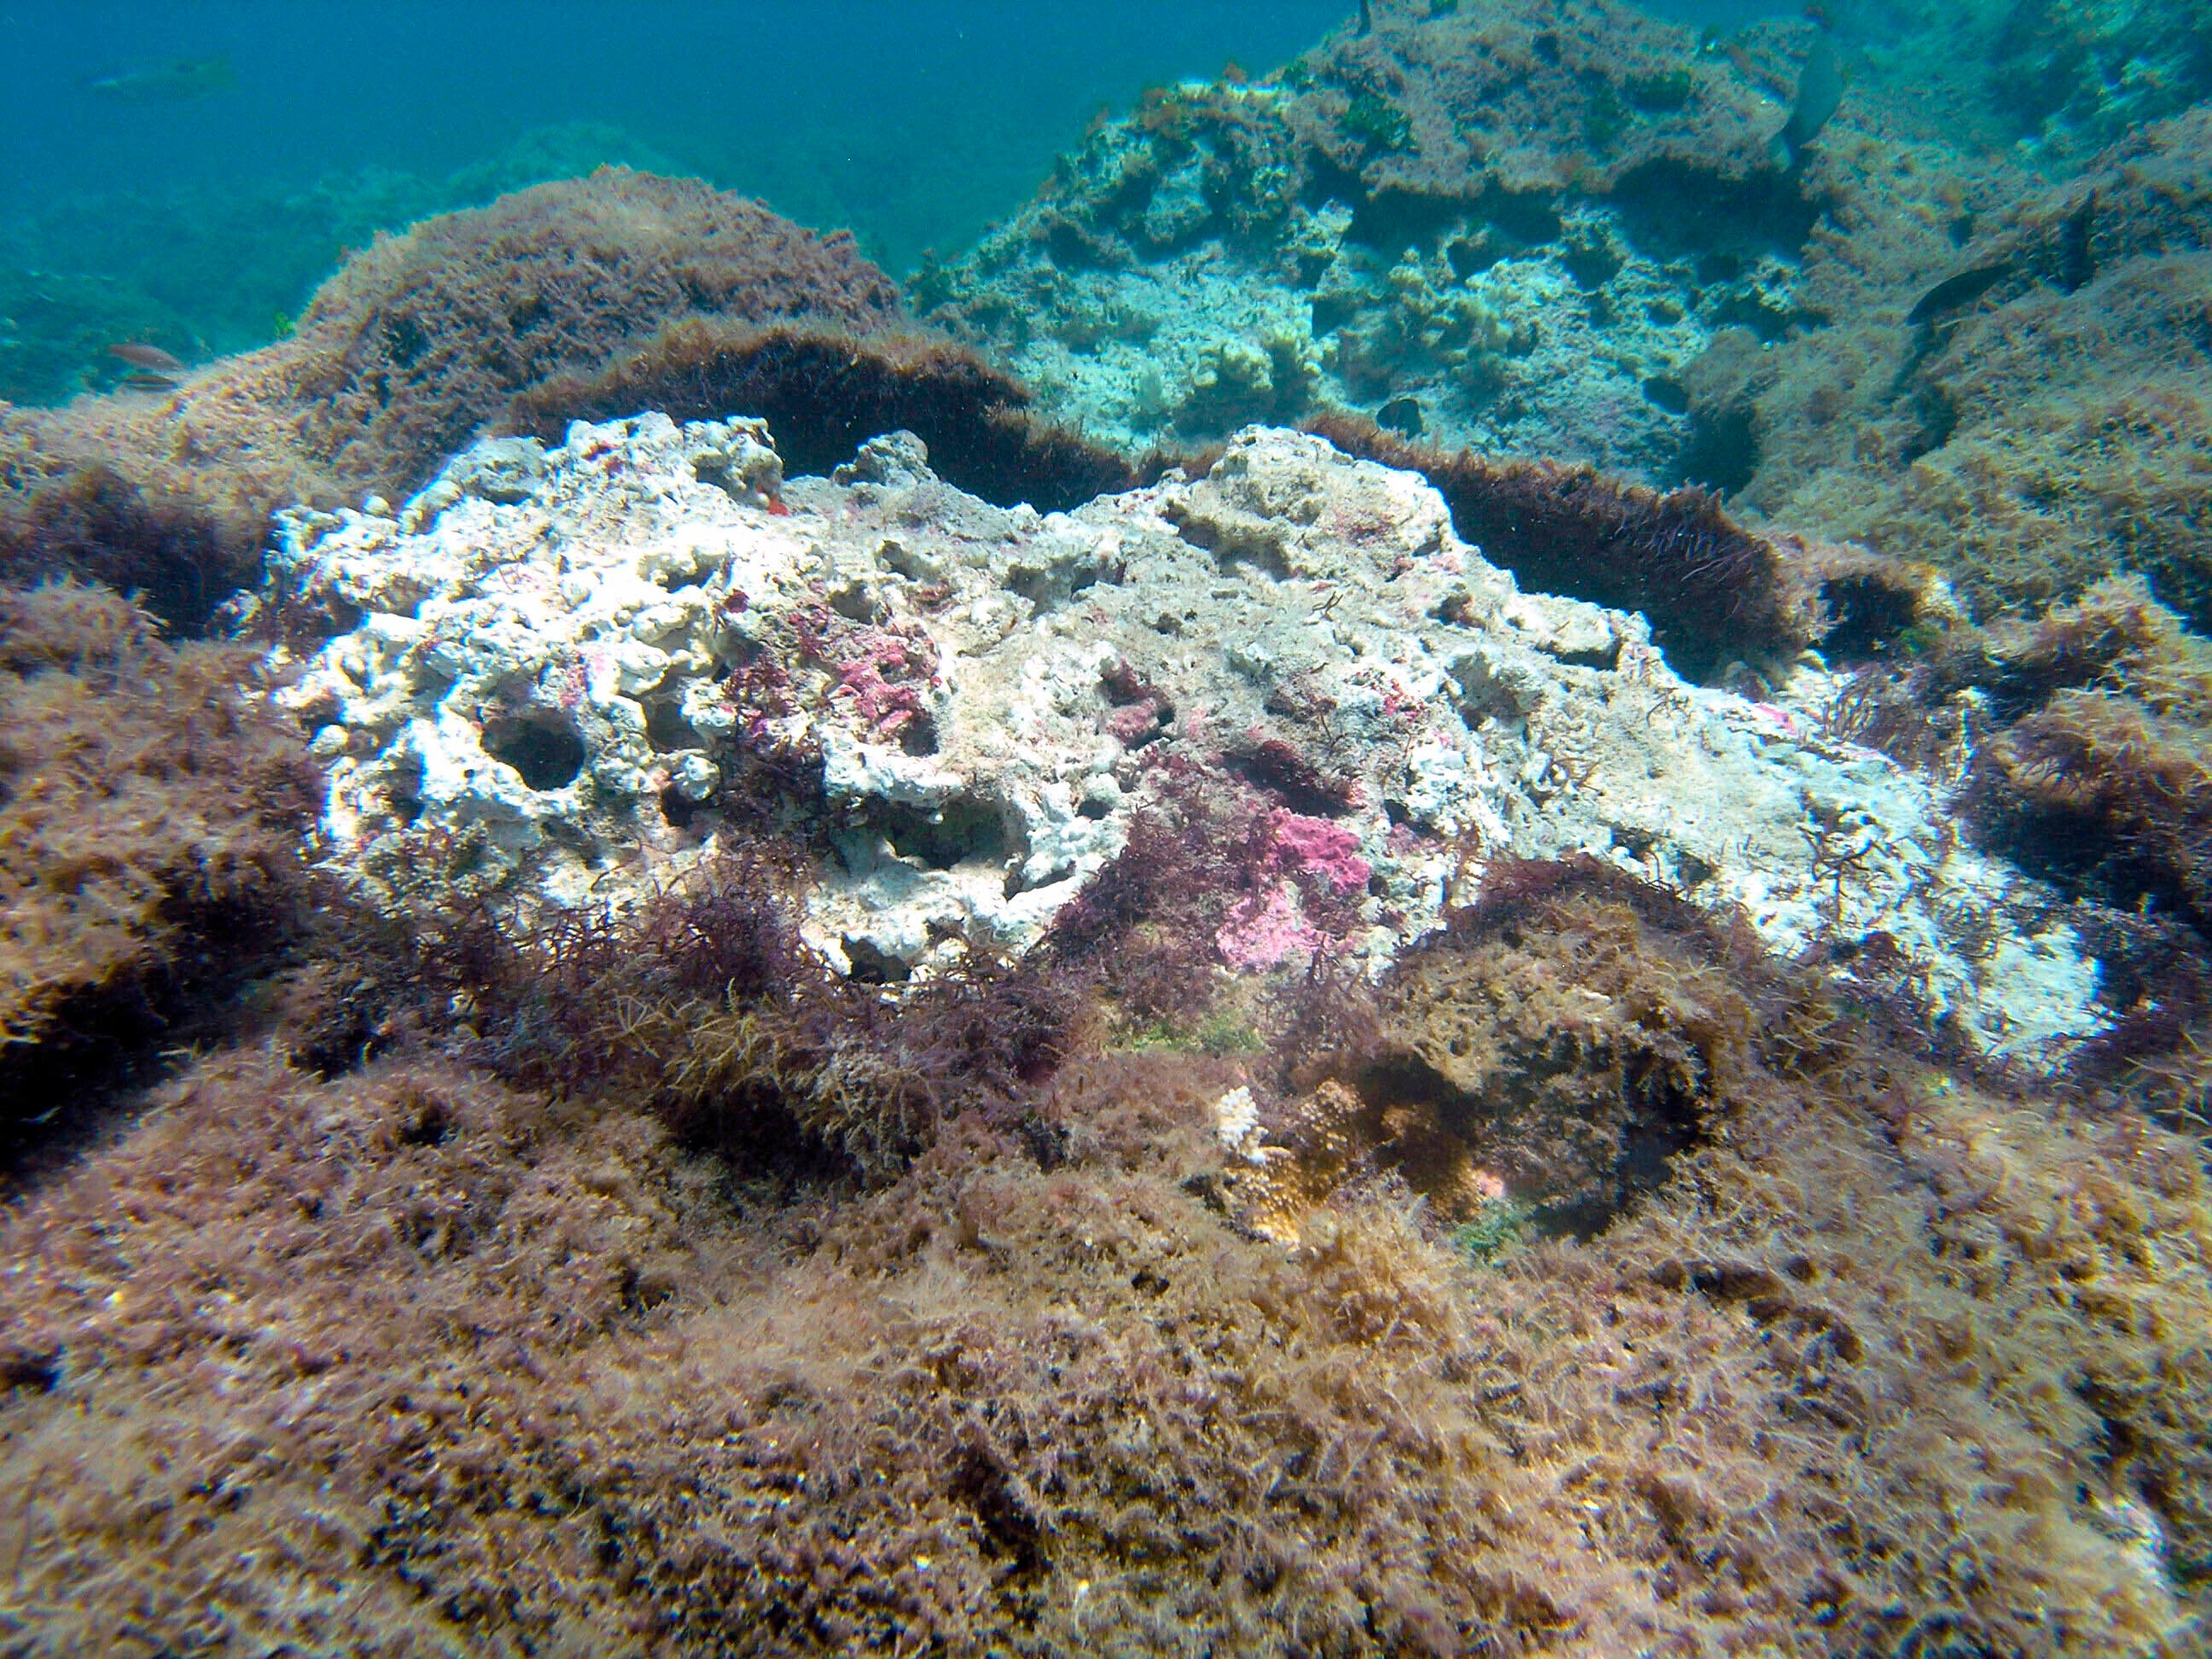 A new species of seaweed covers dead coral on a reef at Pearl and Hermes Atoll in the remote Northwestern Hawaiian Islands, July 31, 2019. (Heather Spalding/College of Charleston via AP)